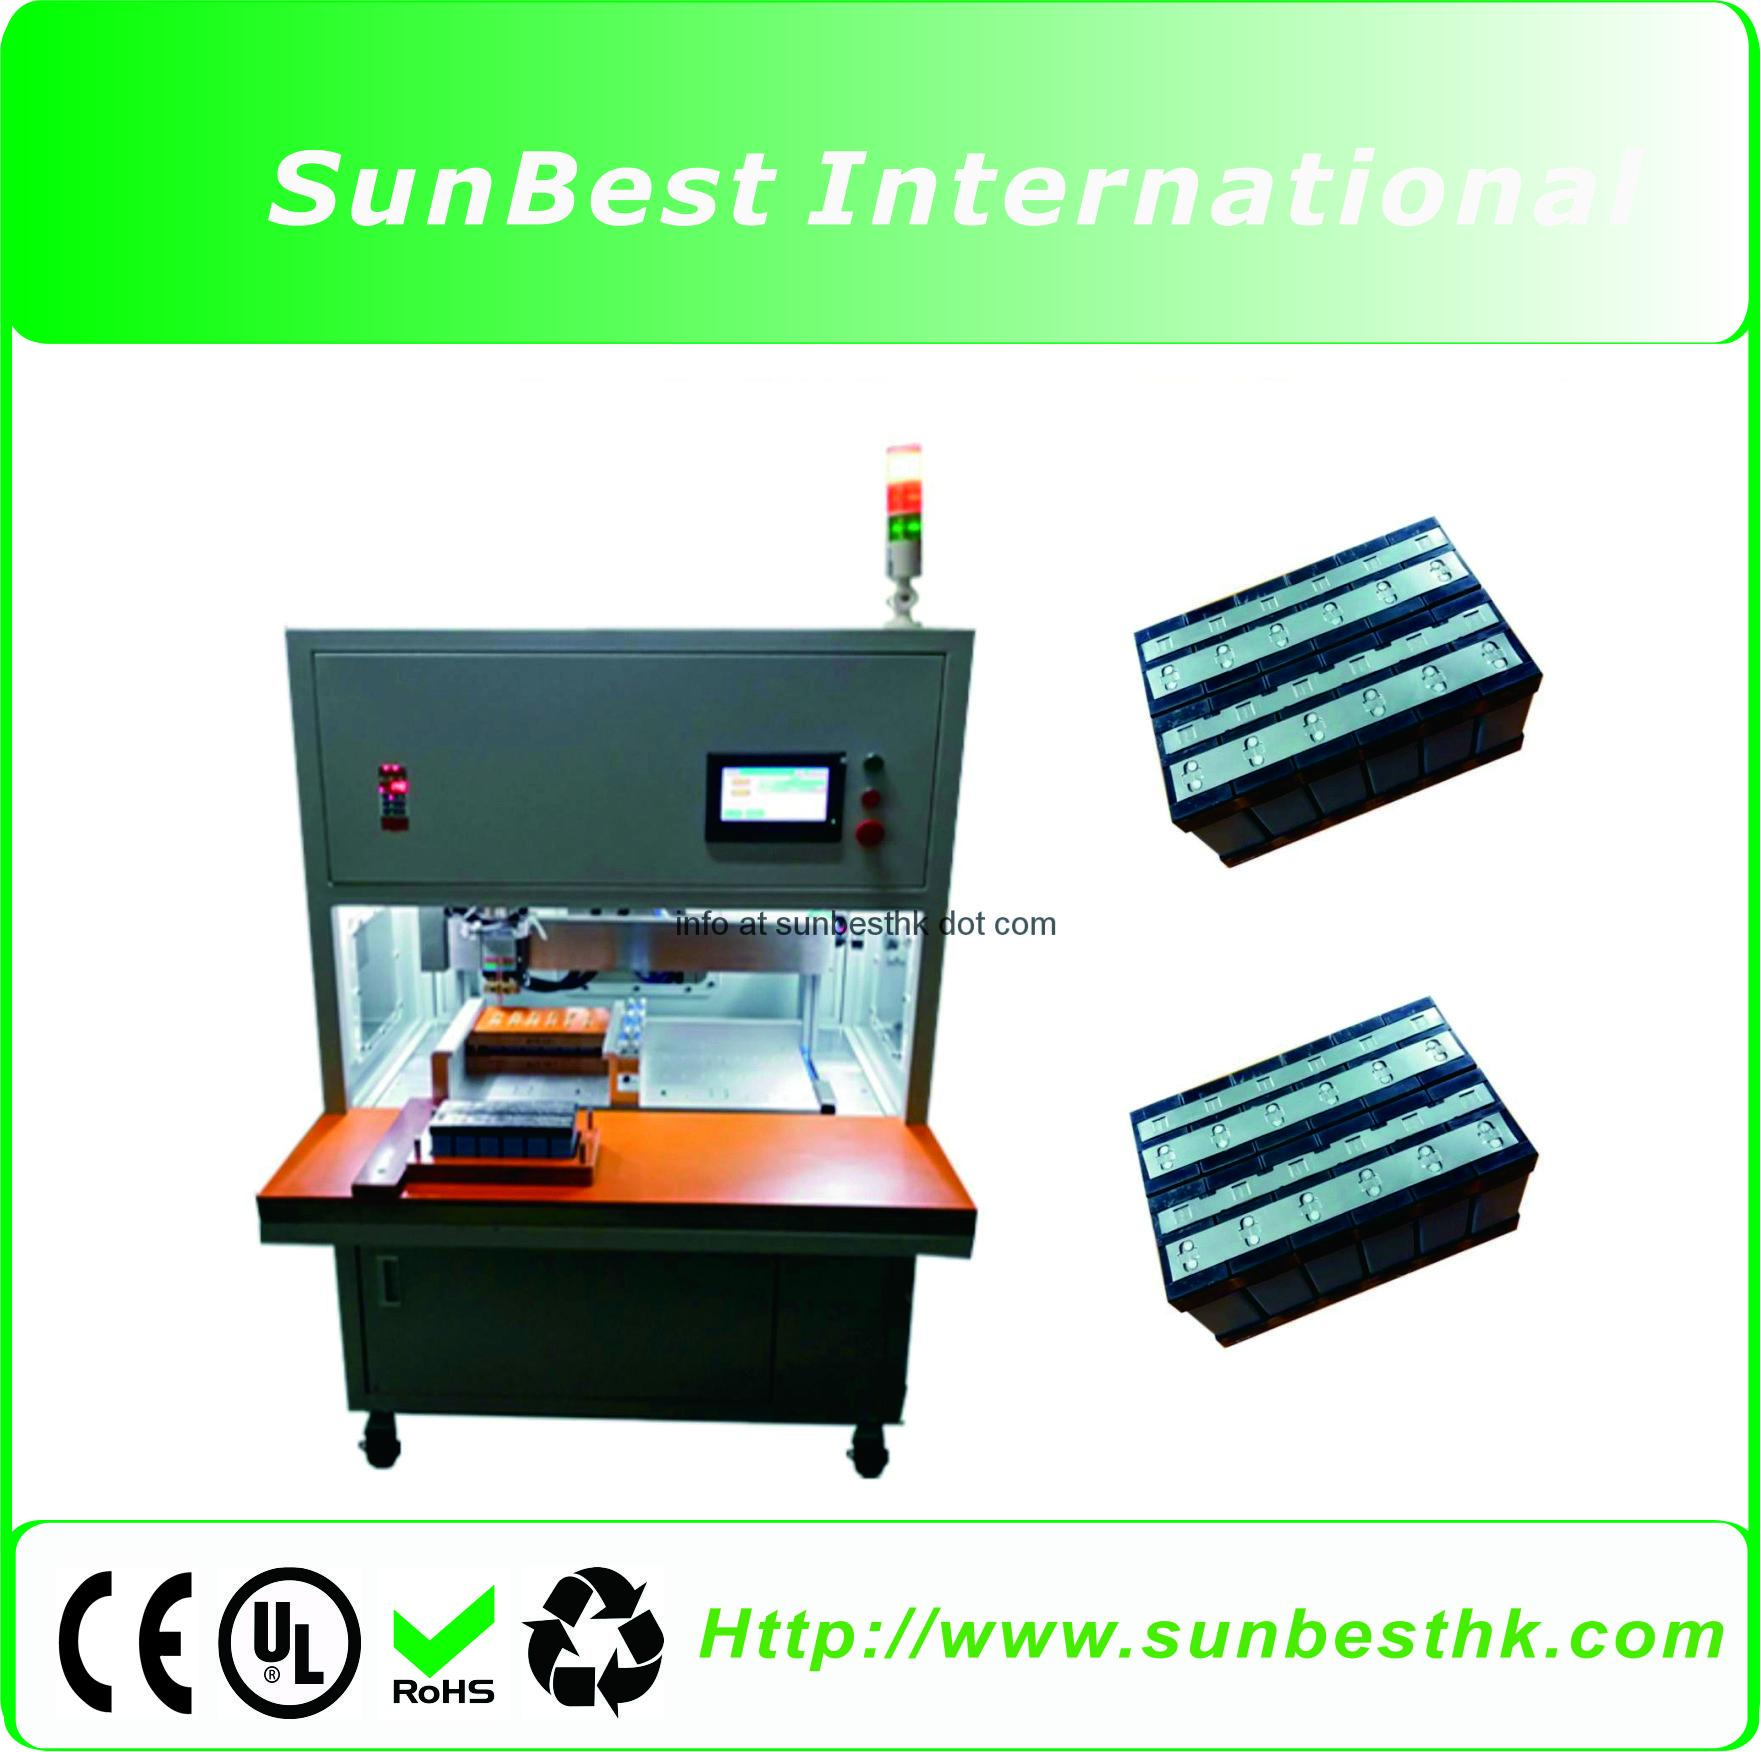 Cylindrical Power Battery Single Side Automatic Spot Welding Machine BSW-950